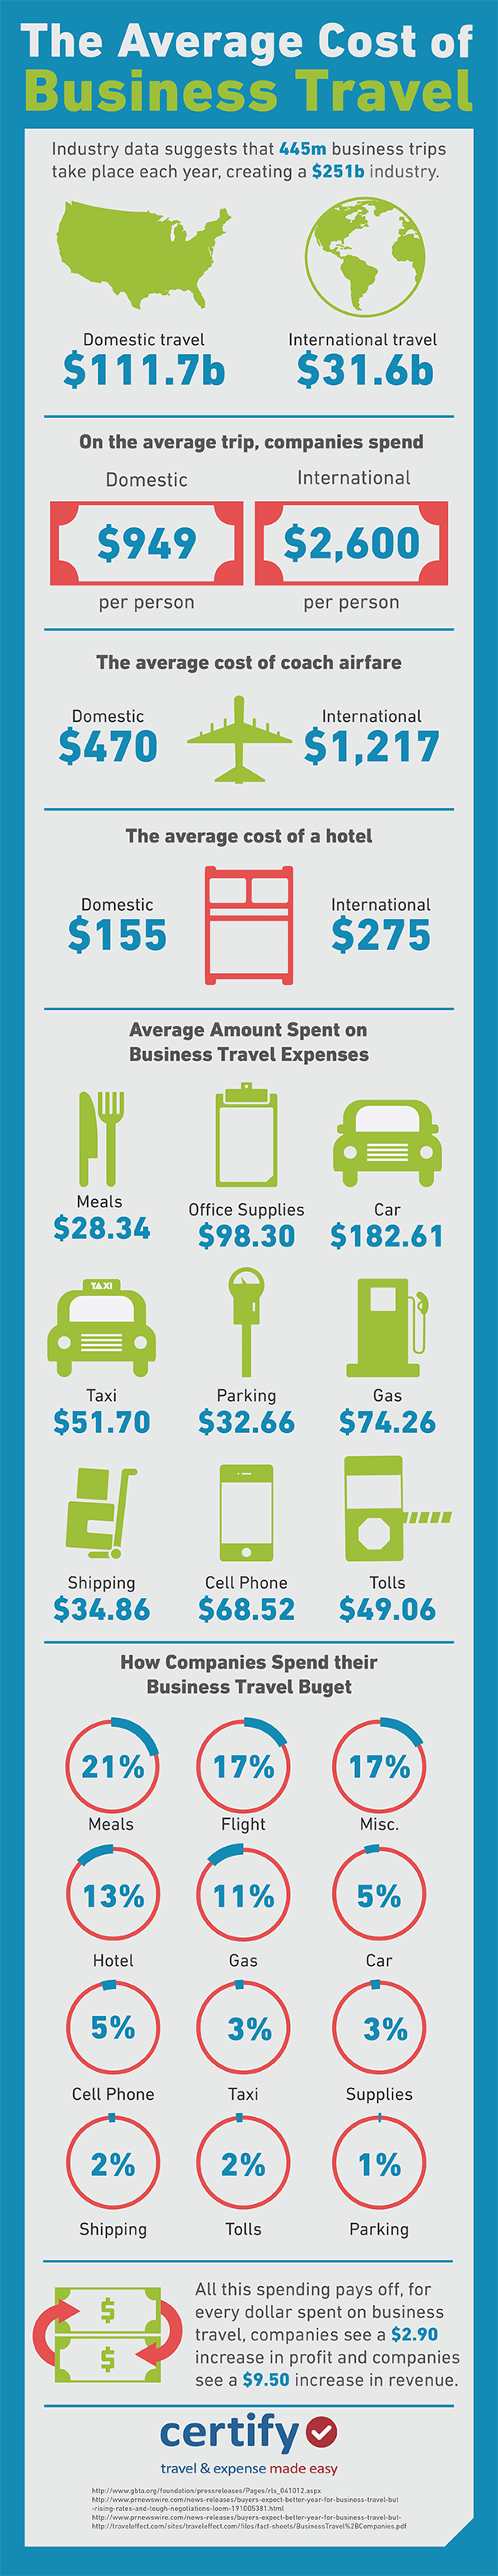 Infographic - The Average Cost of Business Travel